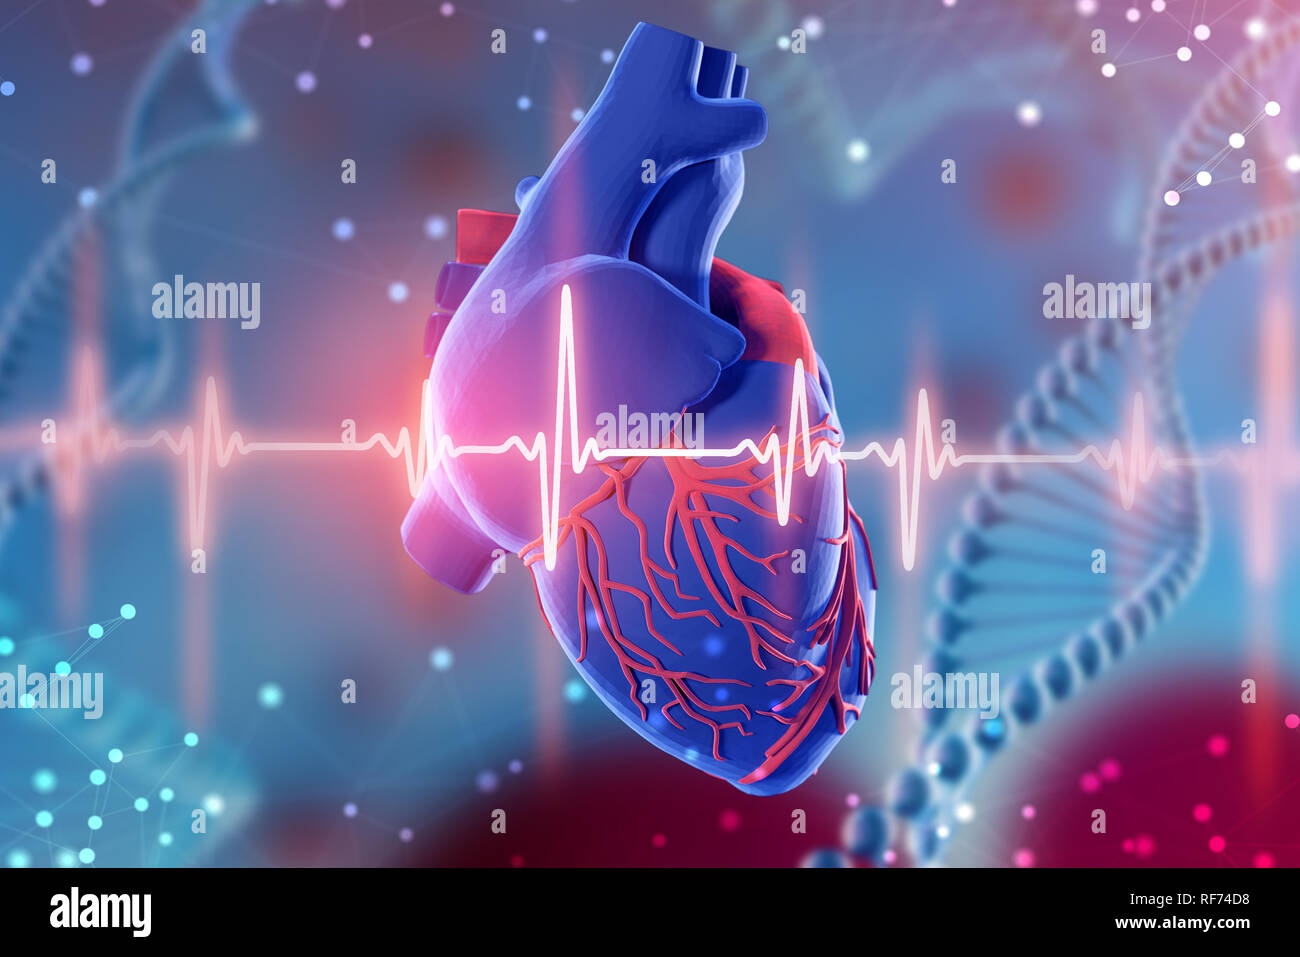 3d Illustration Of Human Heart And Cardiogram On Abstract